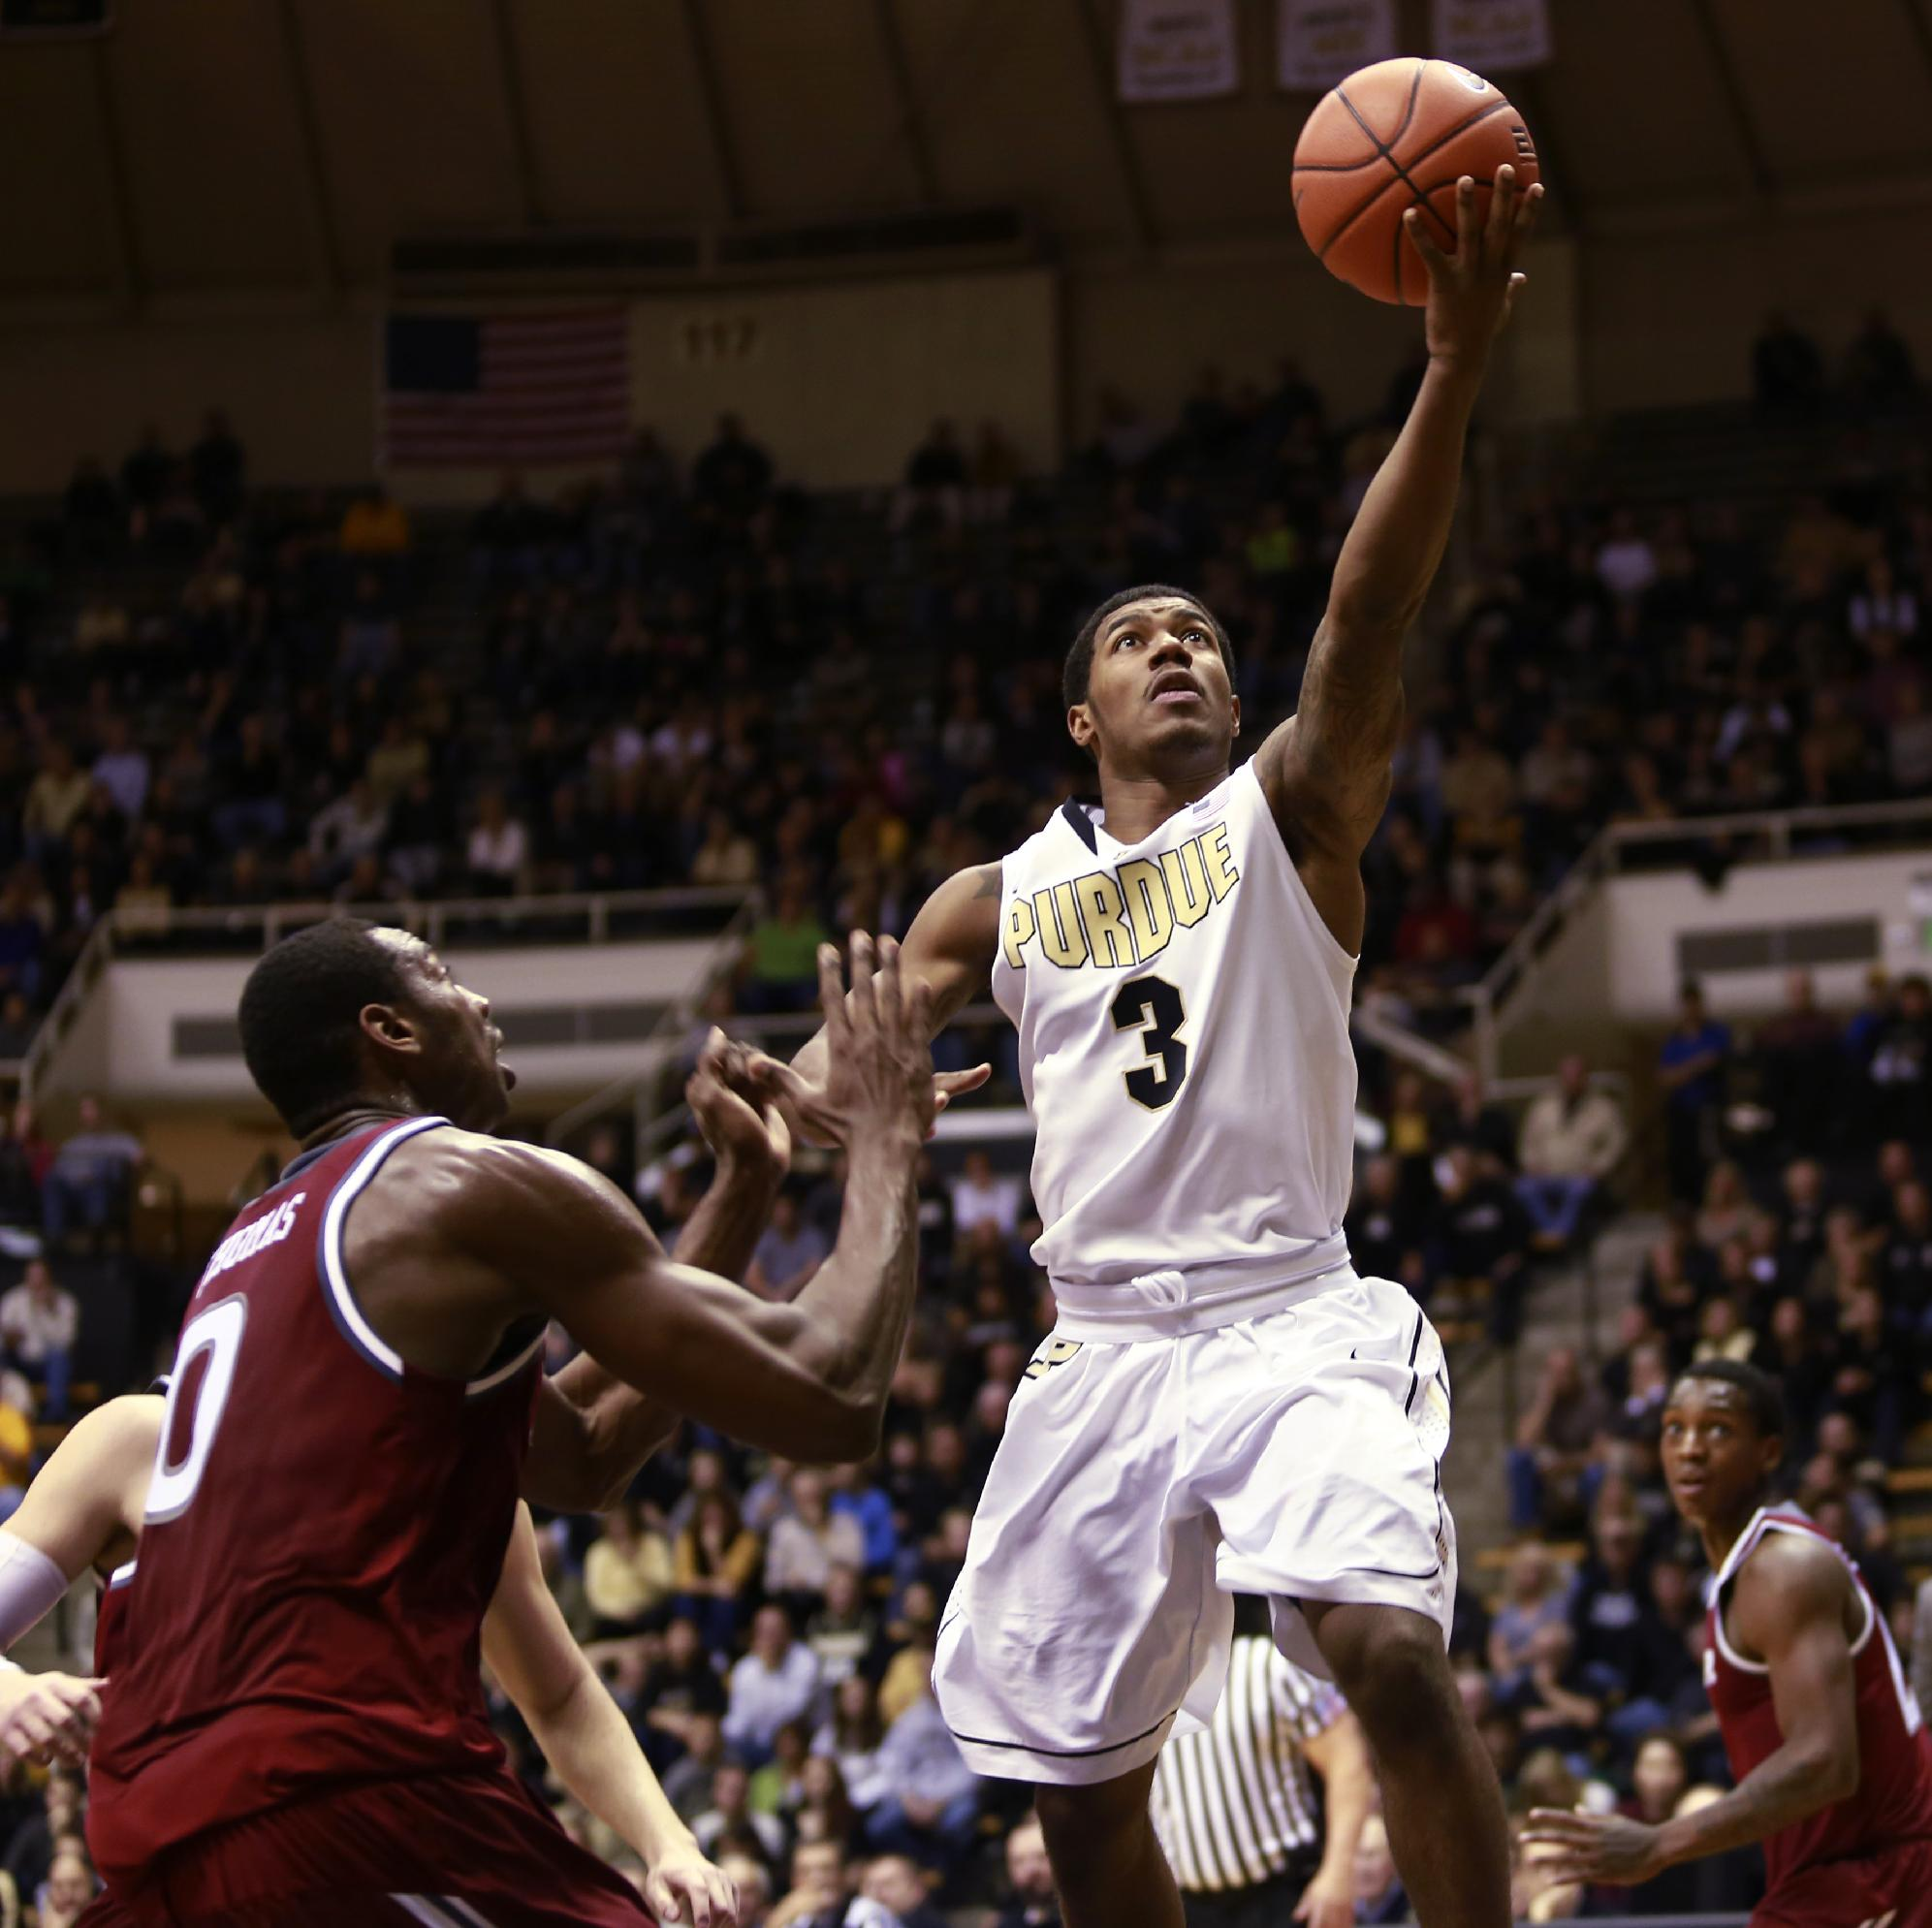 Purdue guard Ronnie Johnson (3) puts up a shot near Rider forward Emerson Bursis (L) in the second half of an NCAA basketball game versus Purdue in West Lafayette, Ind., Sunday, Nov. 17, 2013. Purdue won 81-77